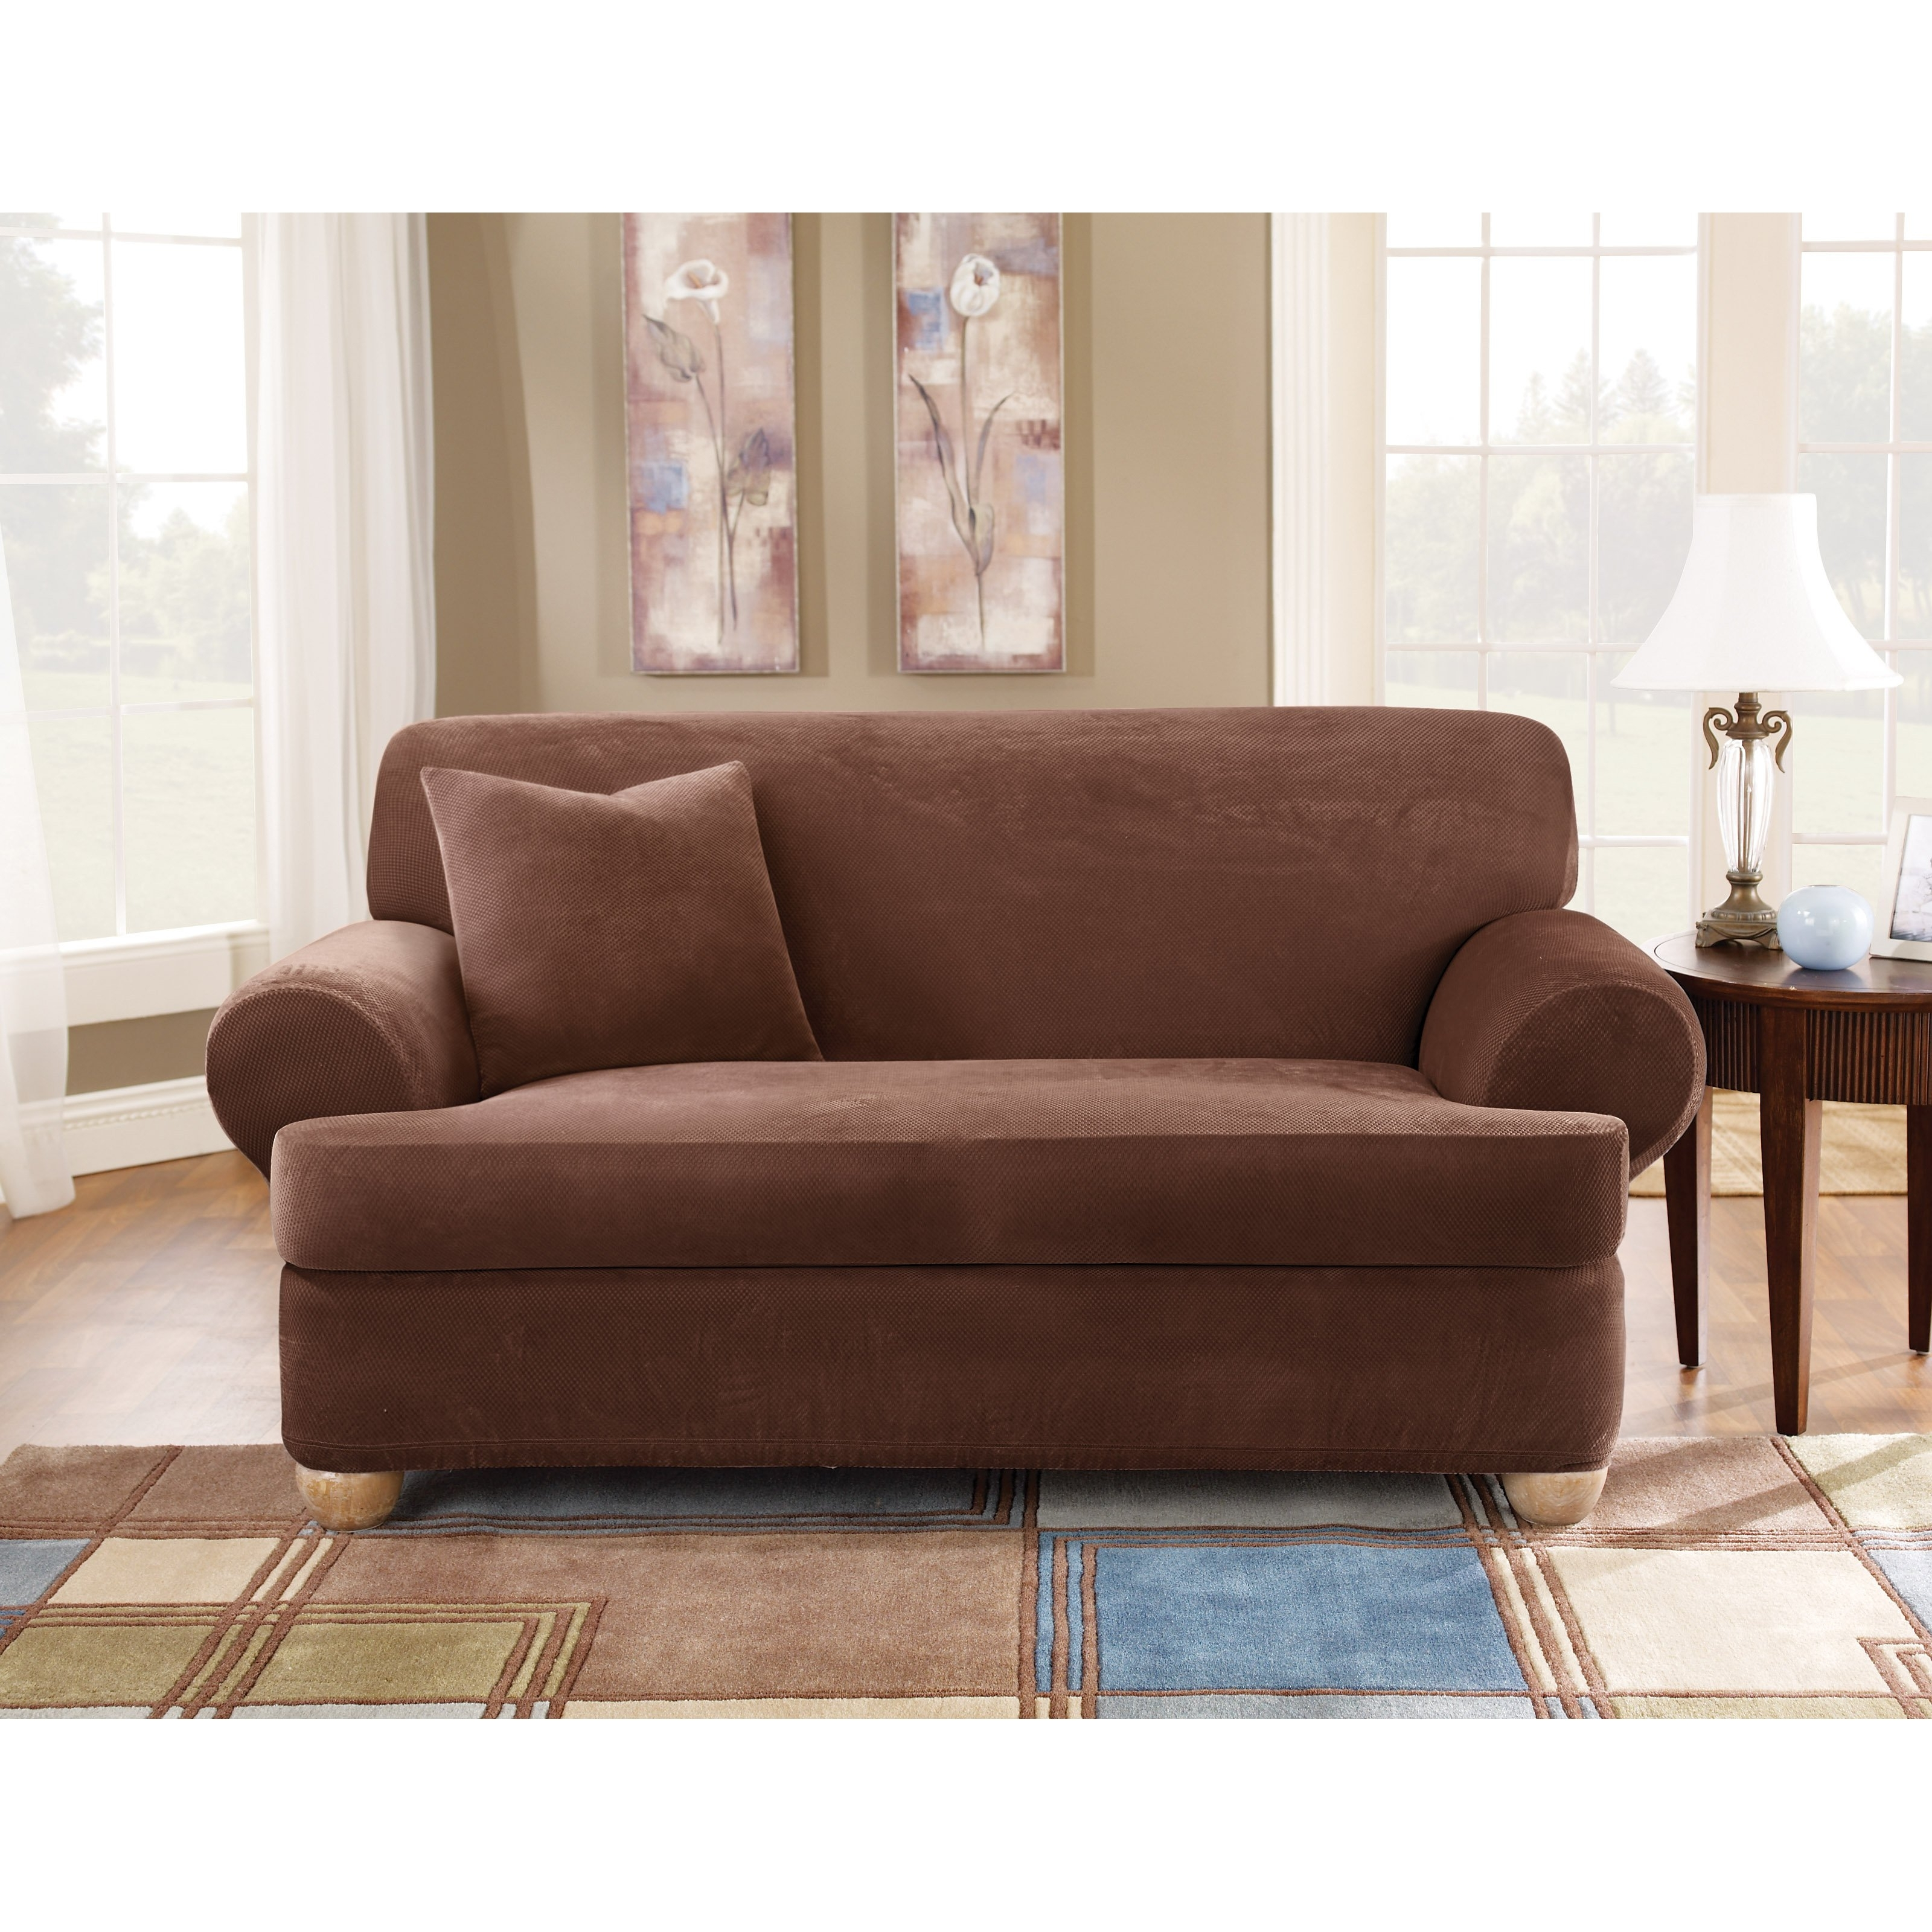 Most Up To Date Fancy Sofas With Fancy Leather Sofa Covers For Your Tips Slipcover For Leather Sofa (View 5 of 15)